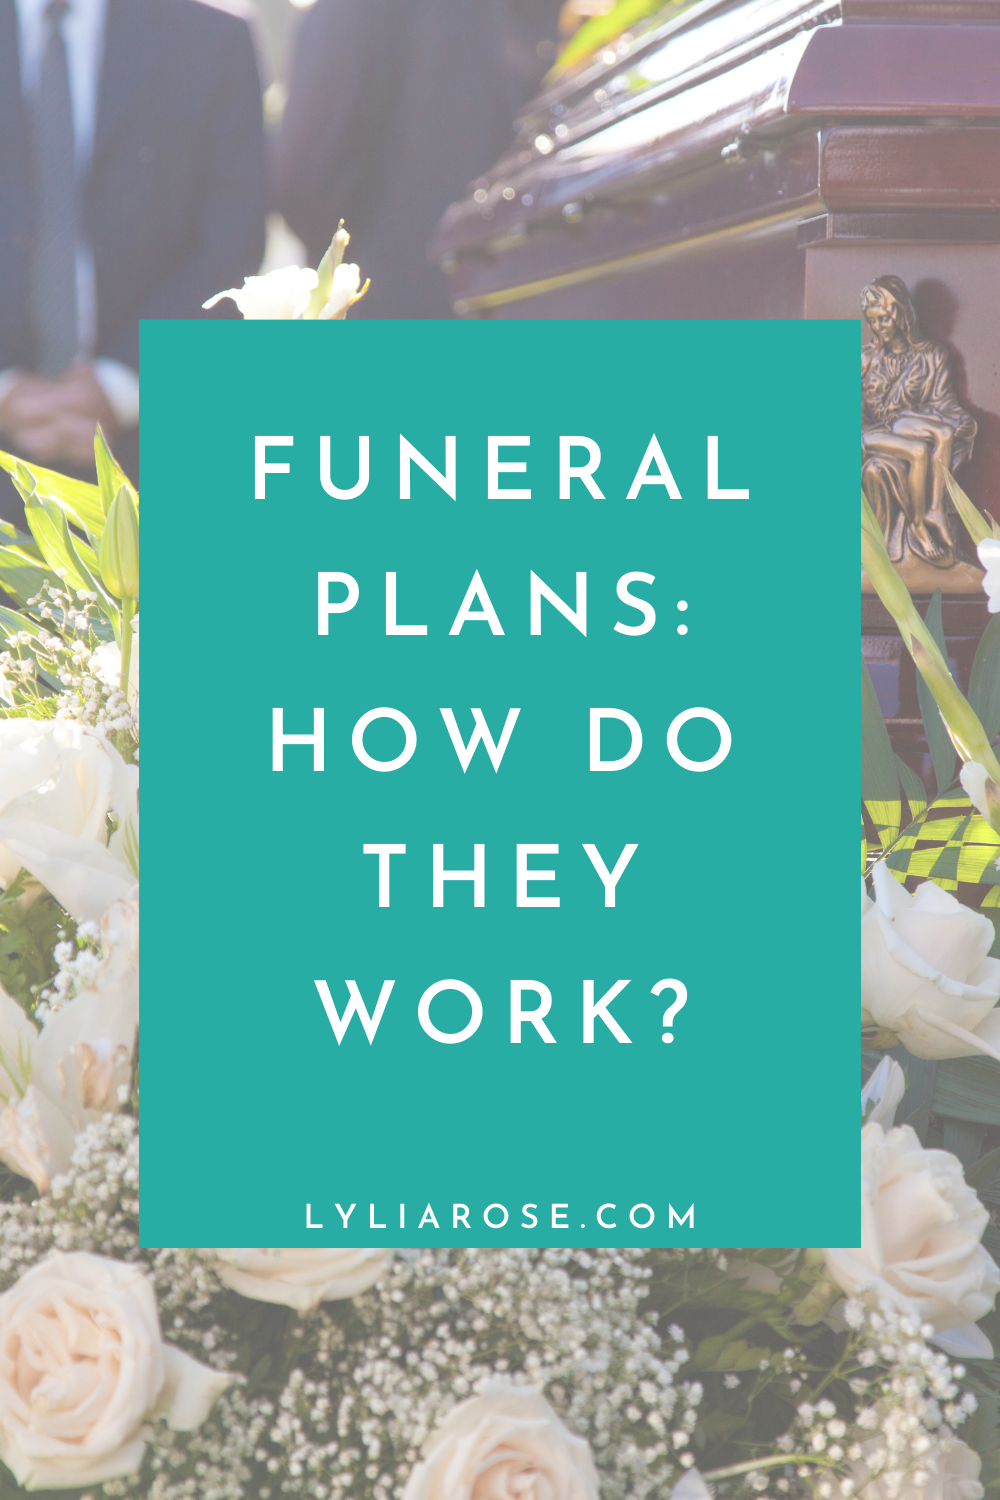 Funeral plans how do they work